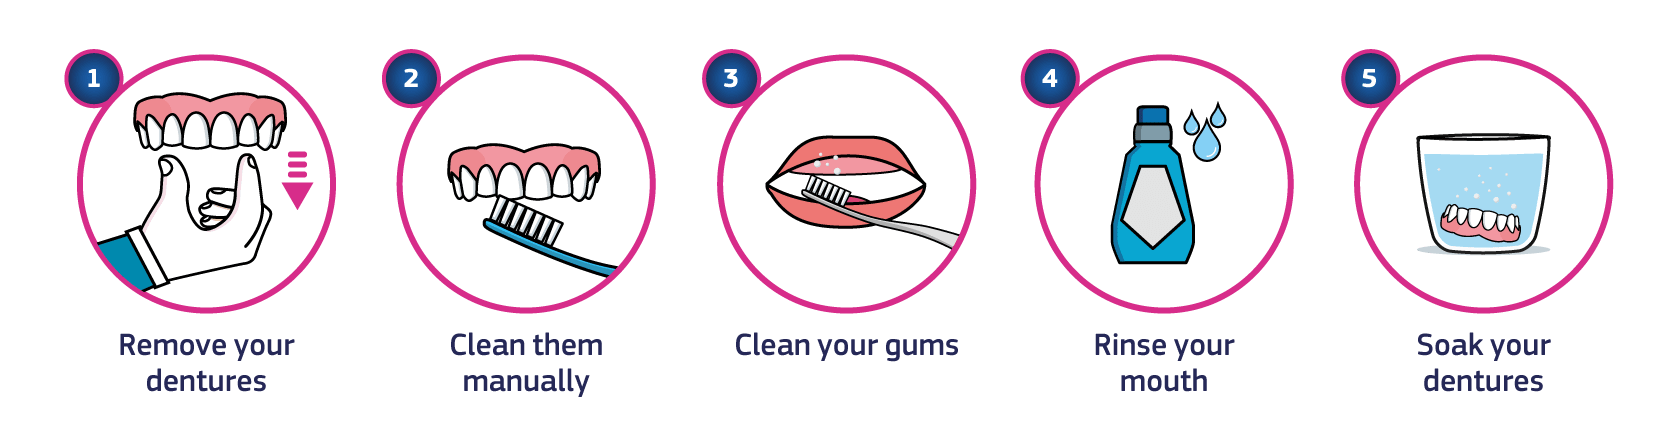 An infographic showing 5 steps for removing dentures: Step 1 – remove your dentures, step 2 – clean them manually, step 3 – clean your gums, step 4 – rinse your mouth, step 5 – soak your dentures